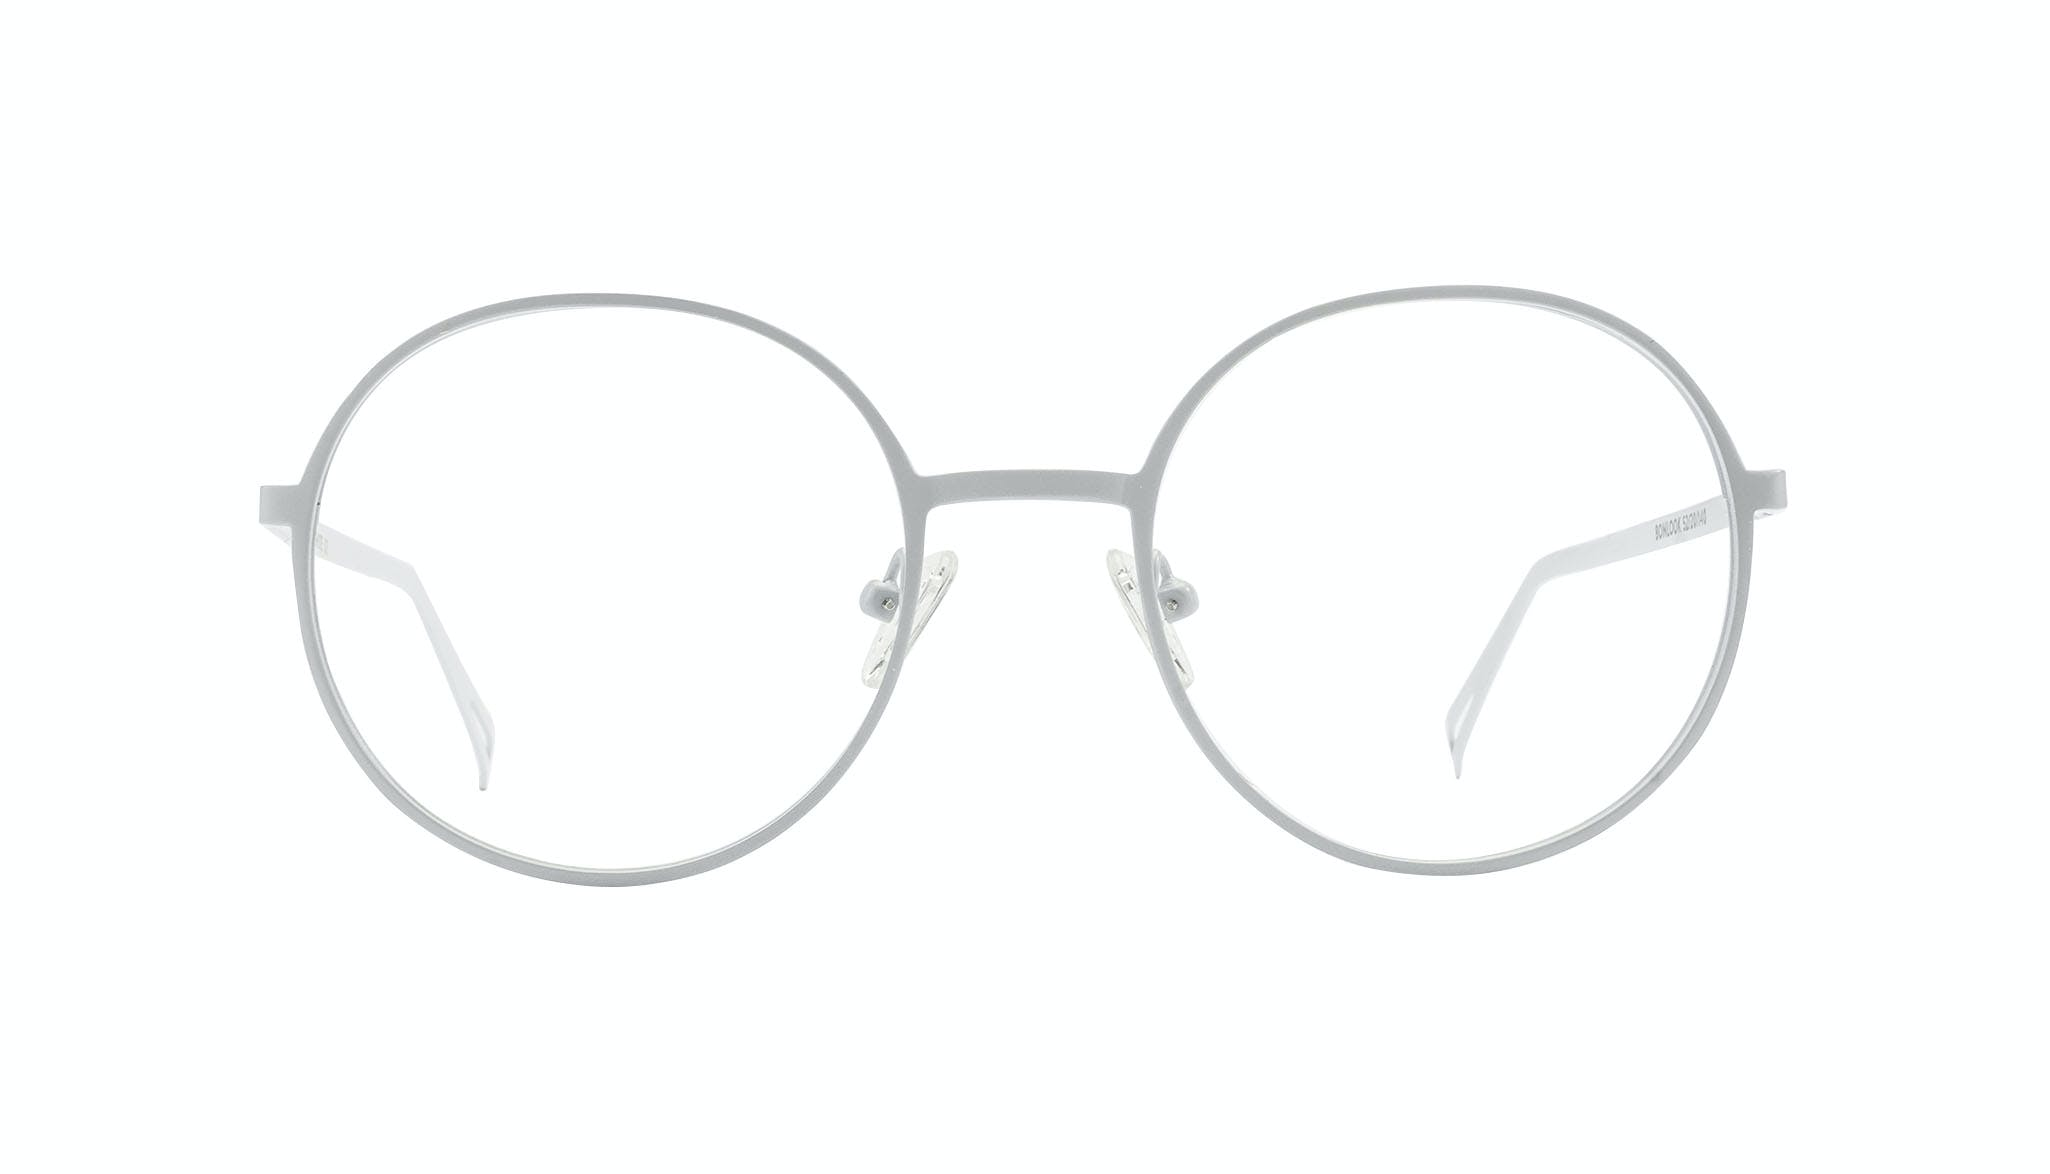 Affordable Fashion Glasses Round Eyeglasses Men Women Varna White Front